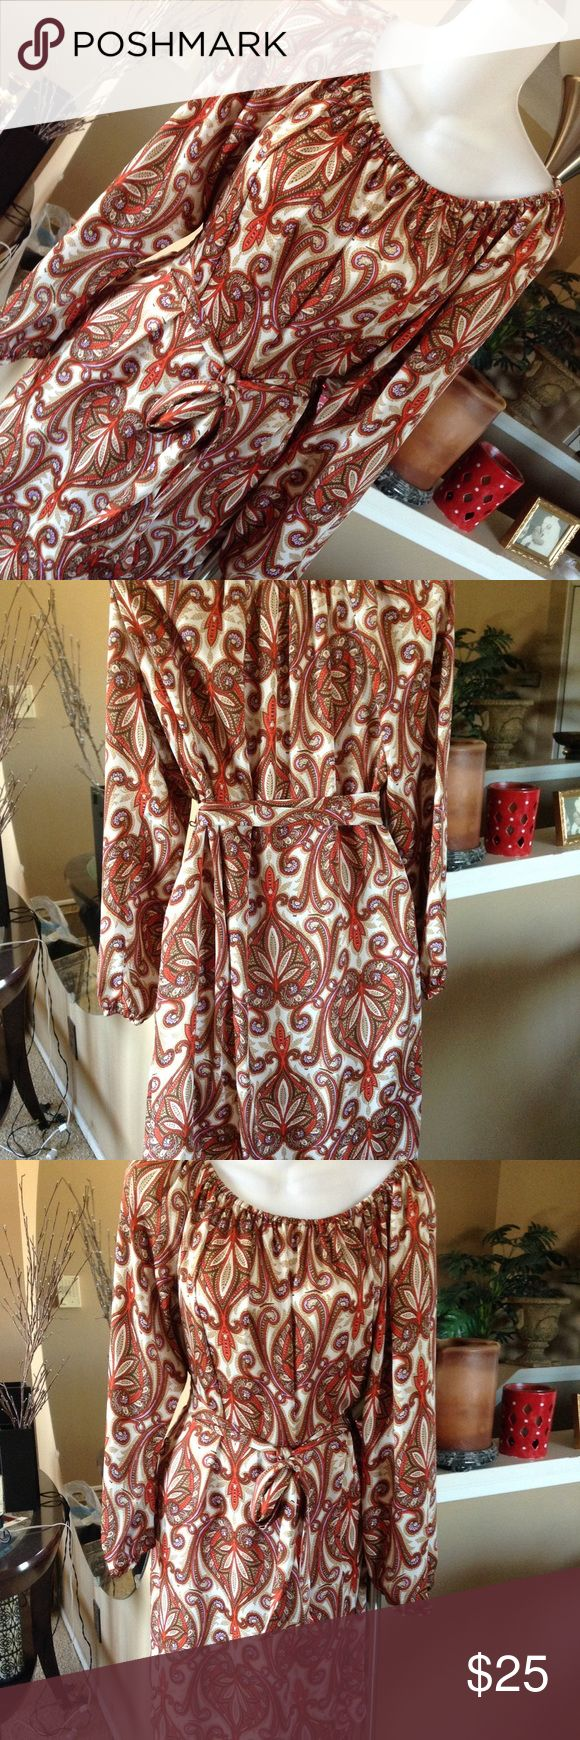 Michael Kors Paisley Dress Gorgeous dress only worn once and dry cleaned. Falls at the knee. I wore with brown boots! Michael Kors Dresses Long Sleeve